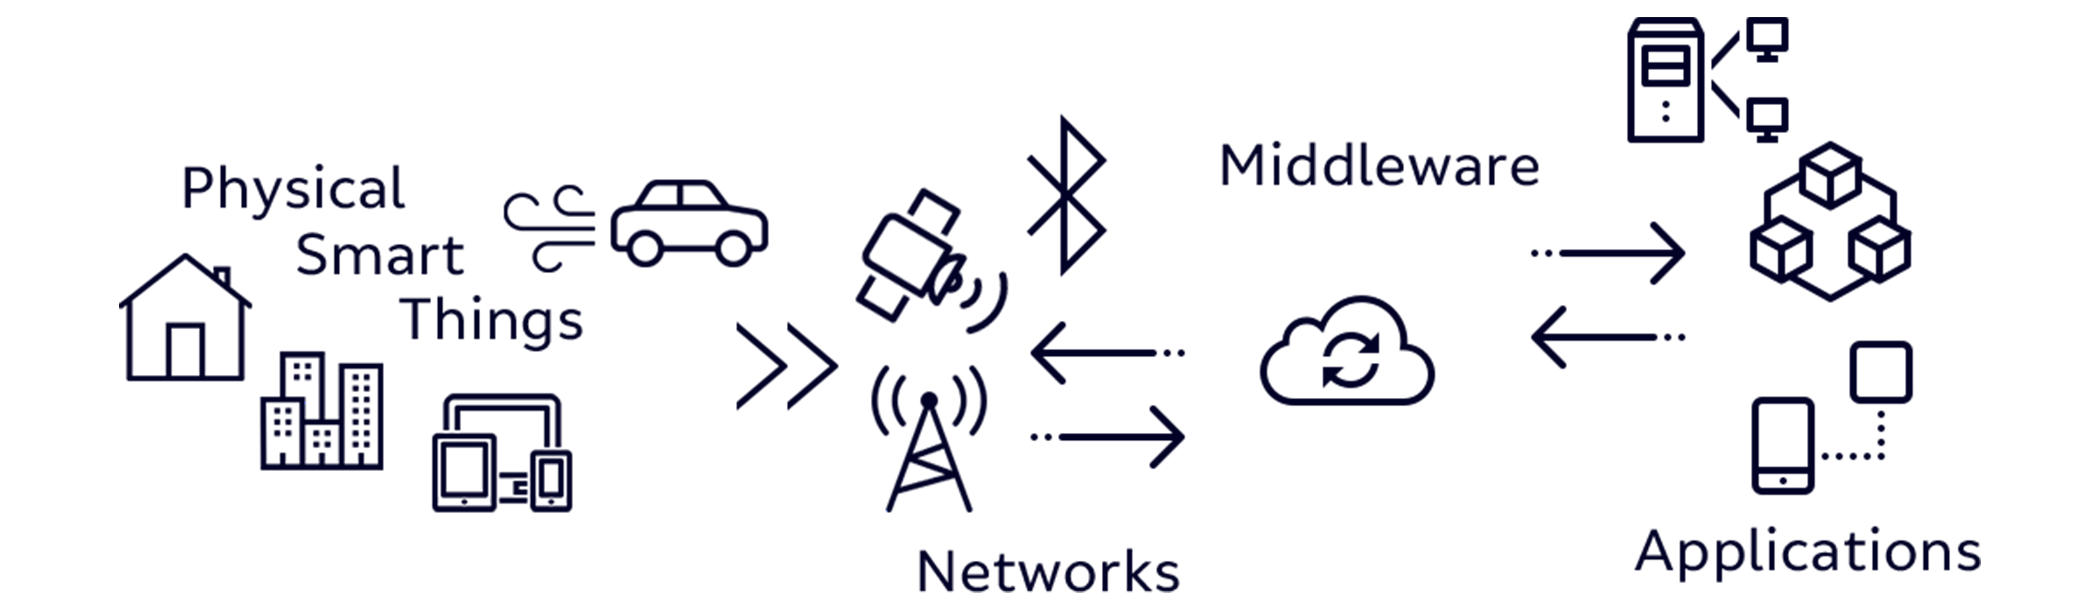 A diagram of physical smart things connecting to networks connecting to applications